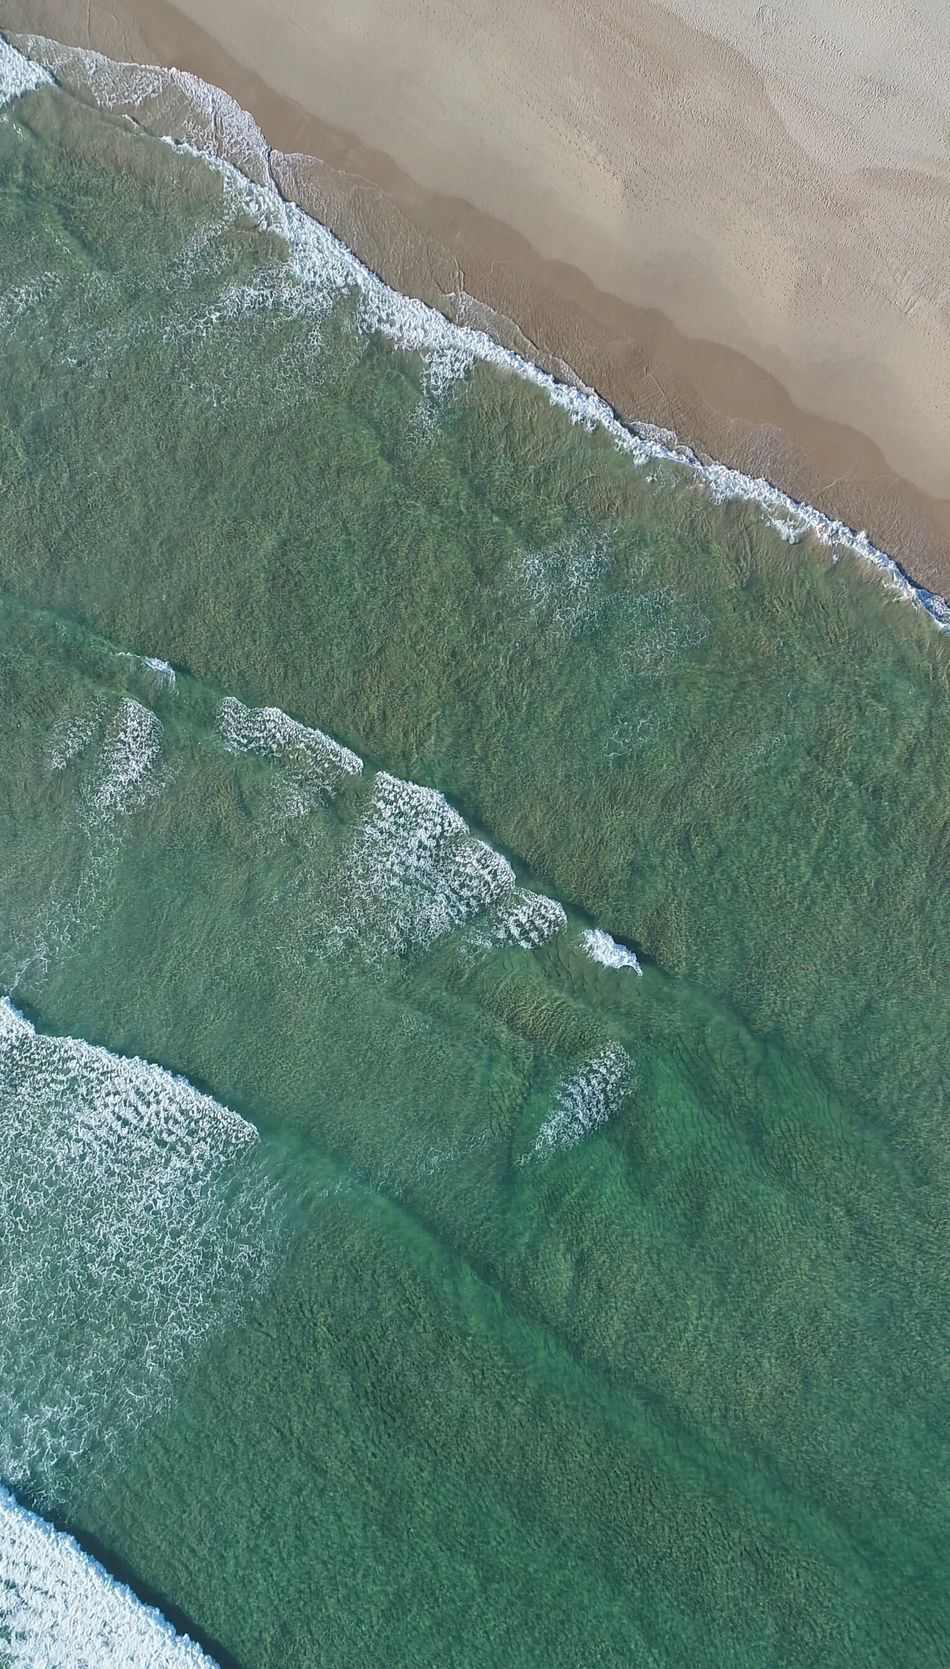 Drone aerial footage of beach/waves🌊 Agriculture Nature Green Color High Angle View Field Landscape Tranquility Beauty In Nature Day No People Rural Scene Scenics Outdoors Phantom 4 Pro Drone  Droneshot Dronephotography Backgrounds Power In Nature Sea Wave Motion Winter